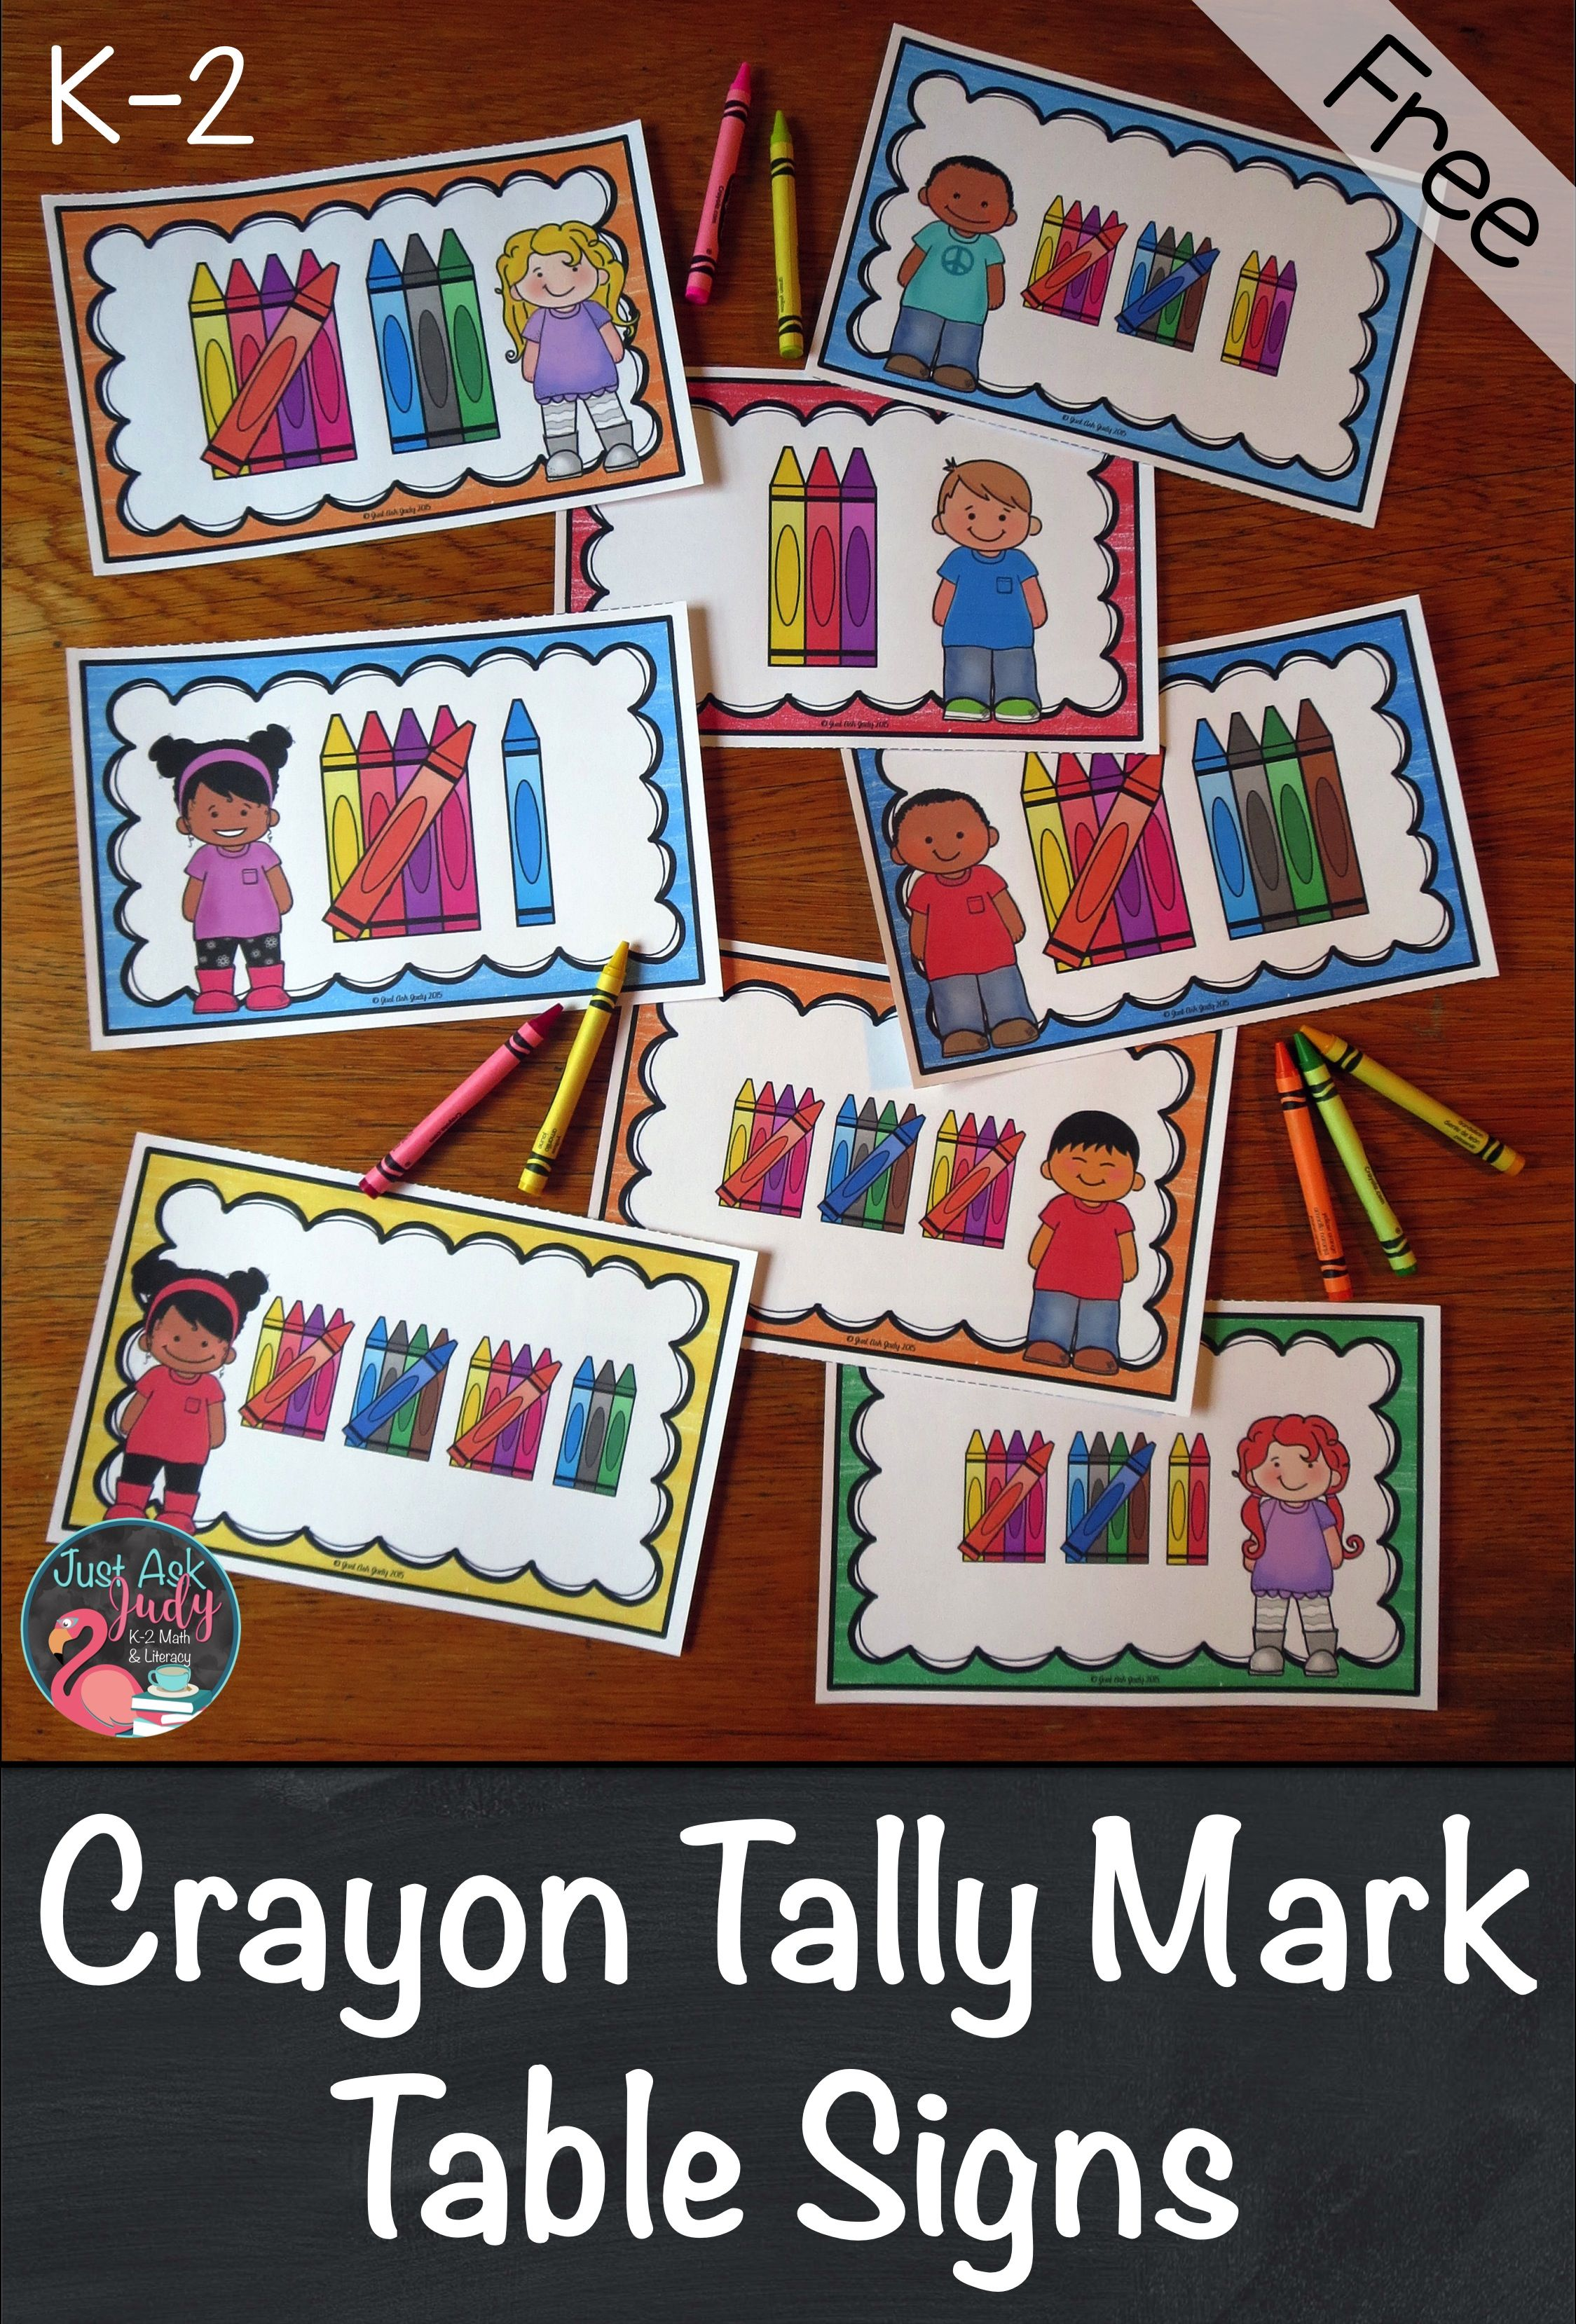 Crayon Tally Marks 1 20 Table Signs